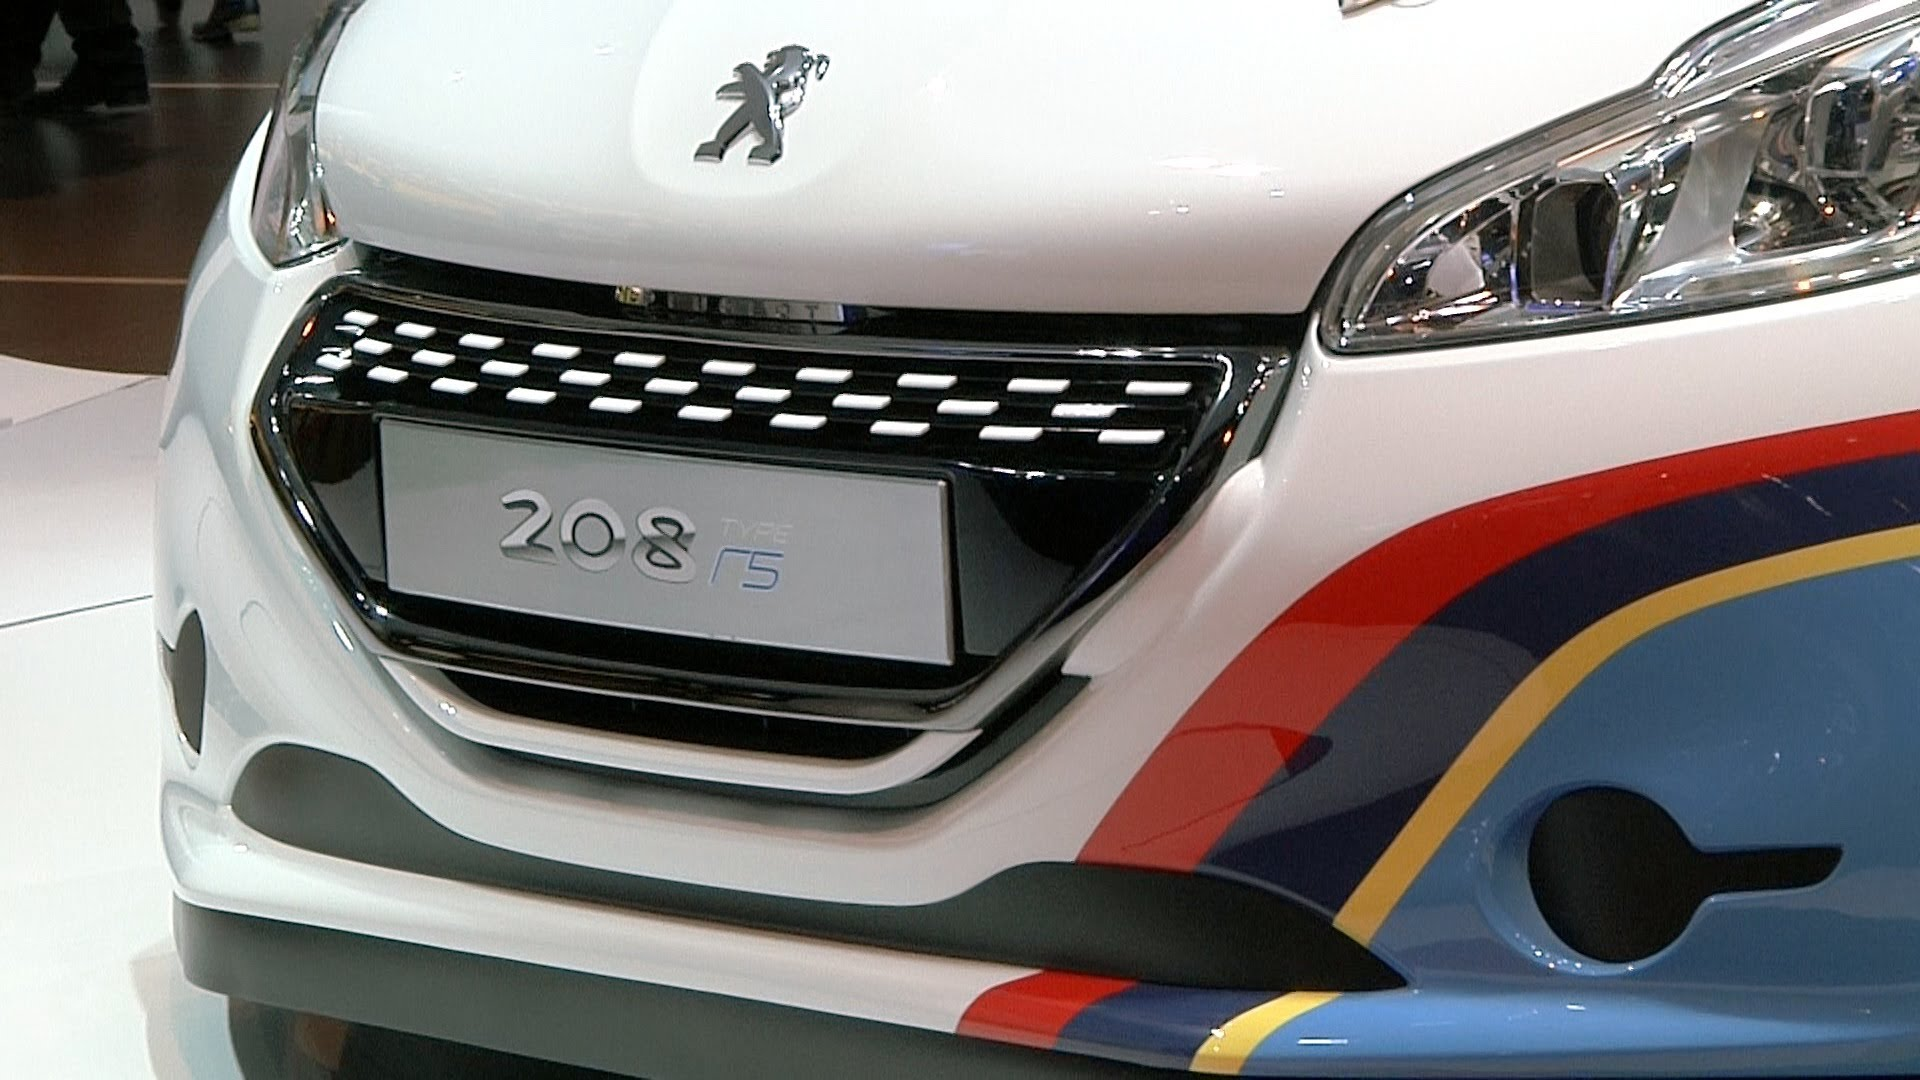 2019 Peugeot 208 R5 Rally car photo - 4